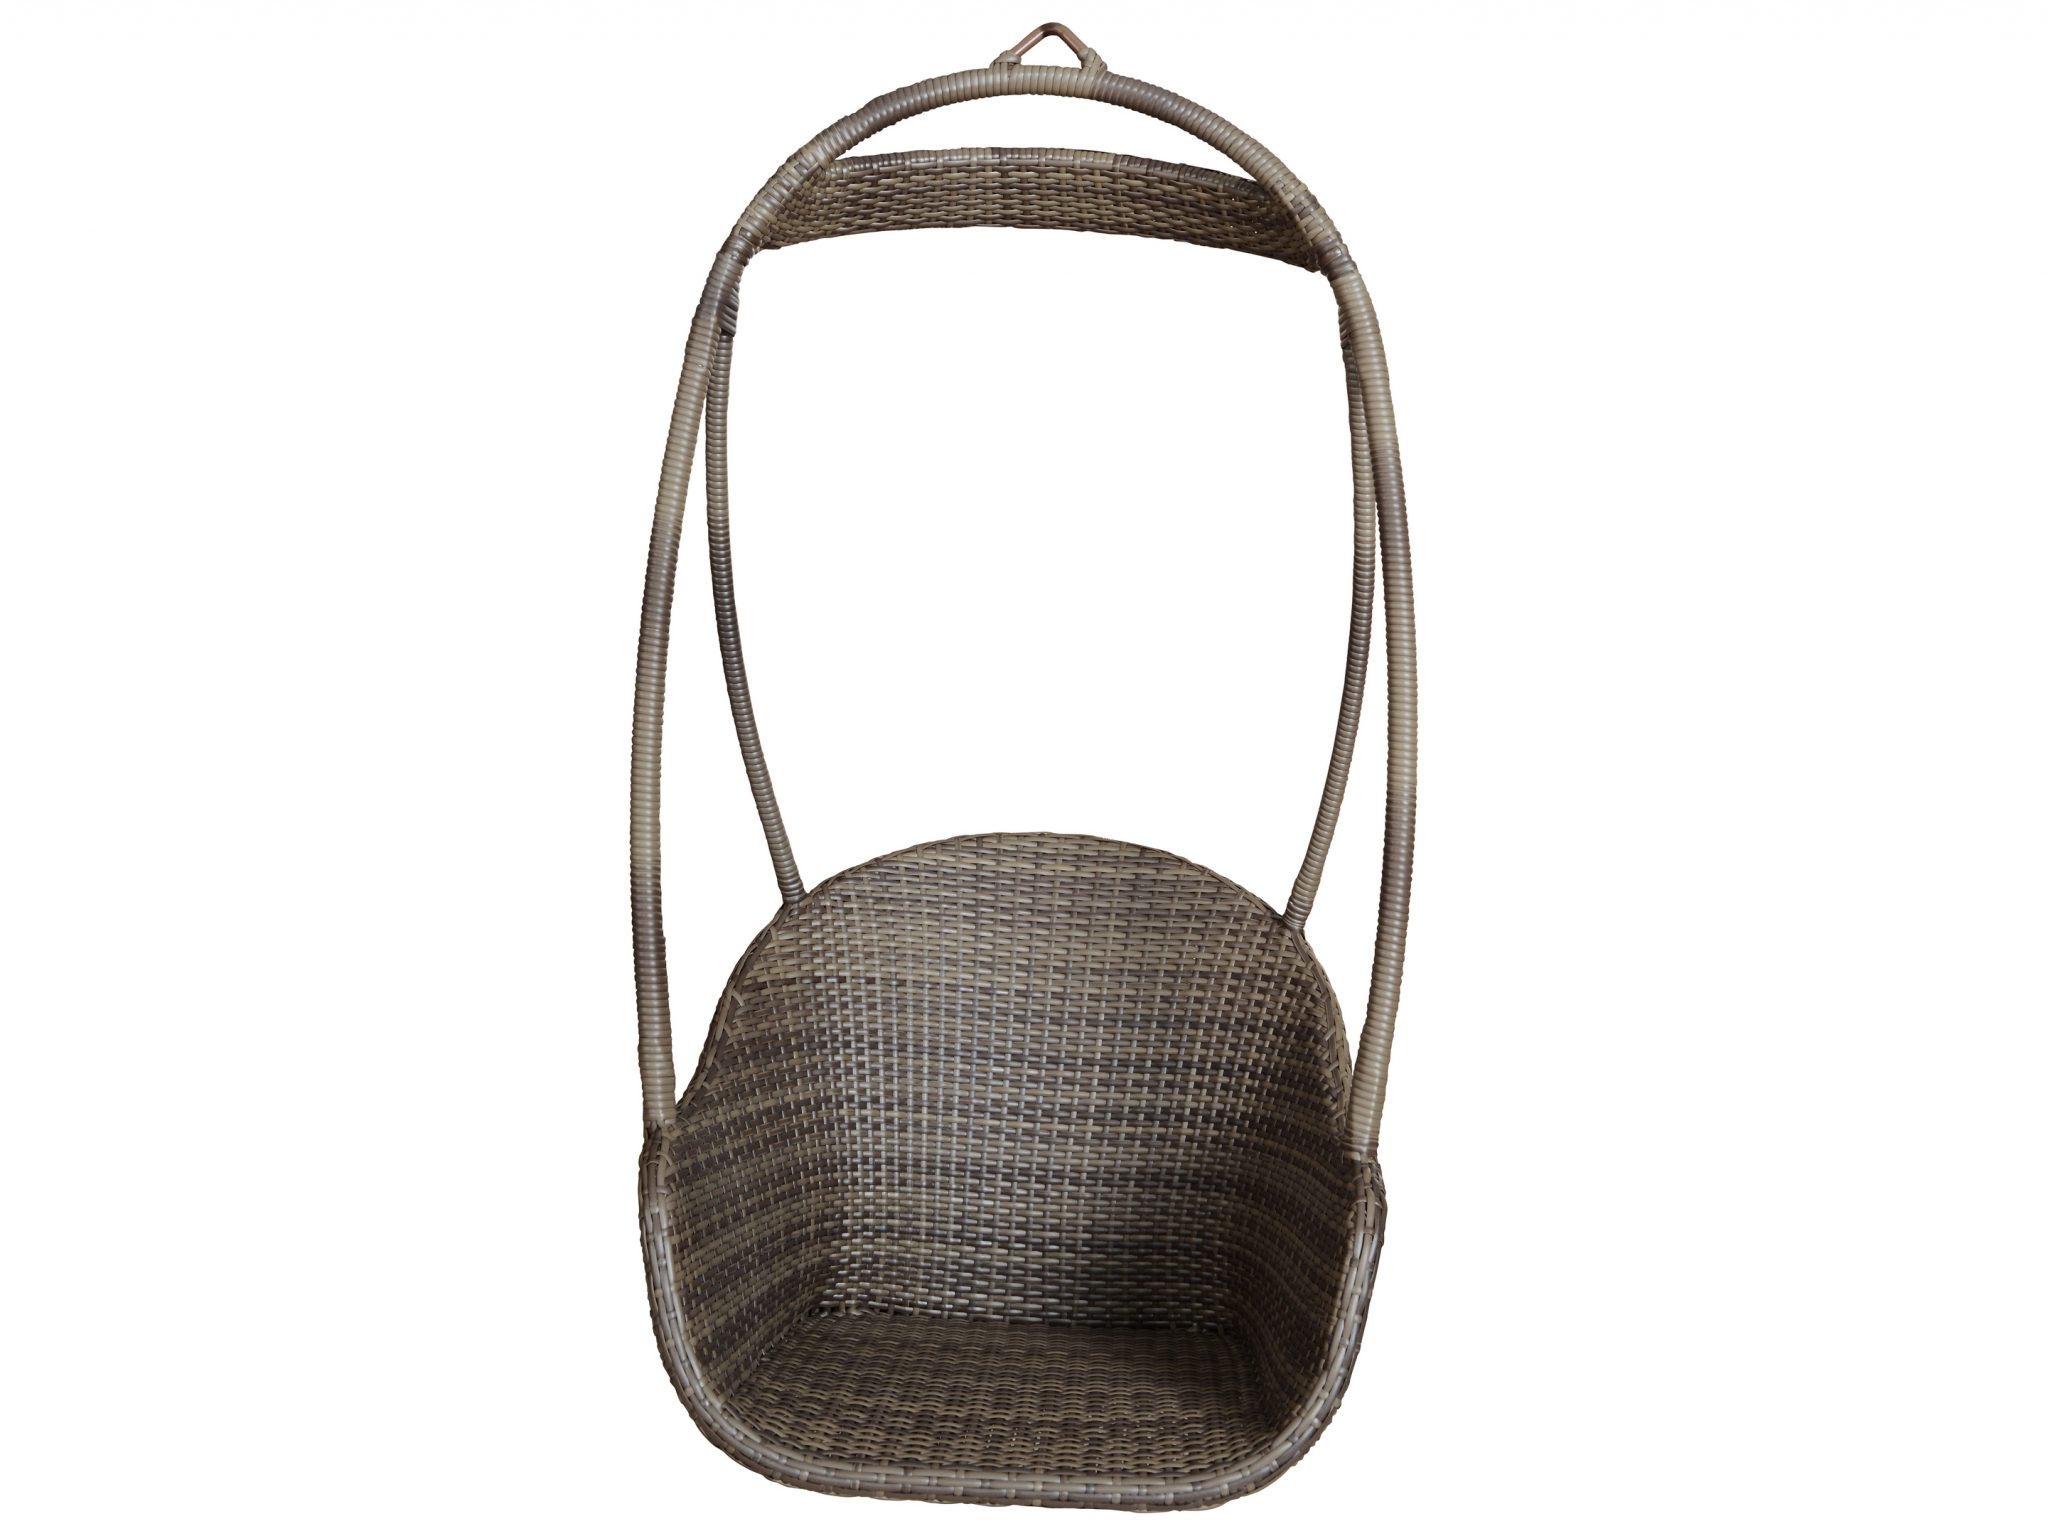 Product Review Wicker Swing Chair Chair Panama Jack by Panama Jack